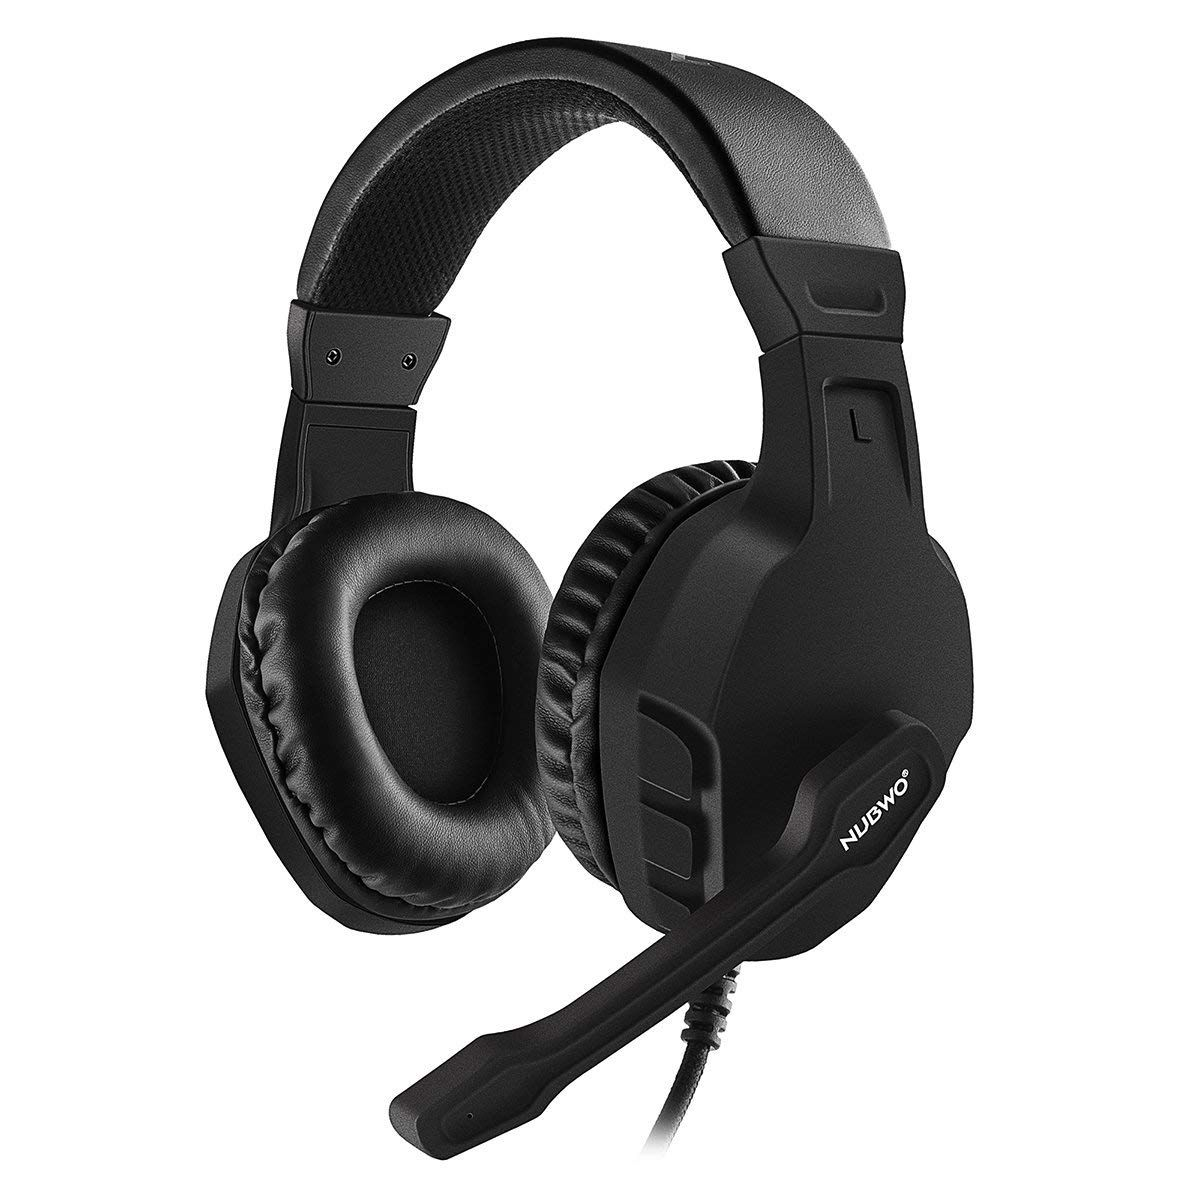 Modohe NUBWO Gaming Headset Mic for Xbox one PS4 Controller, Skype ...